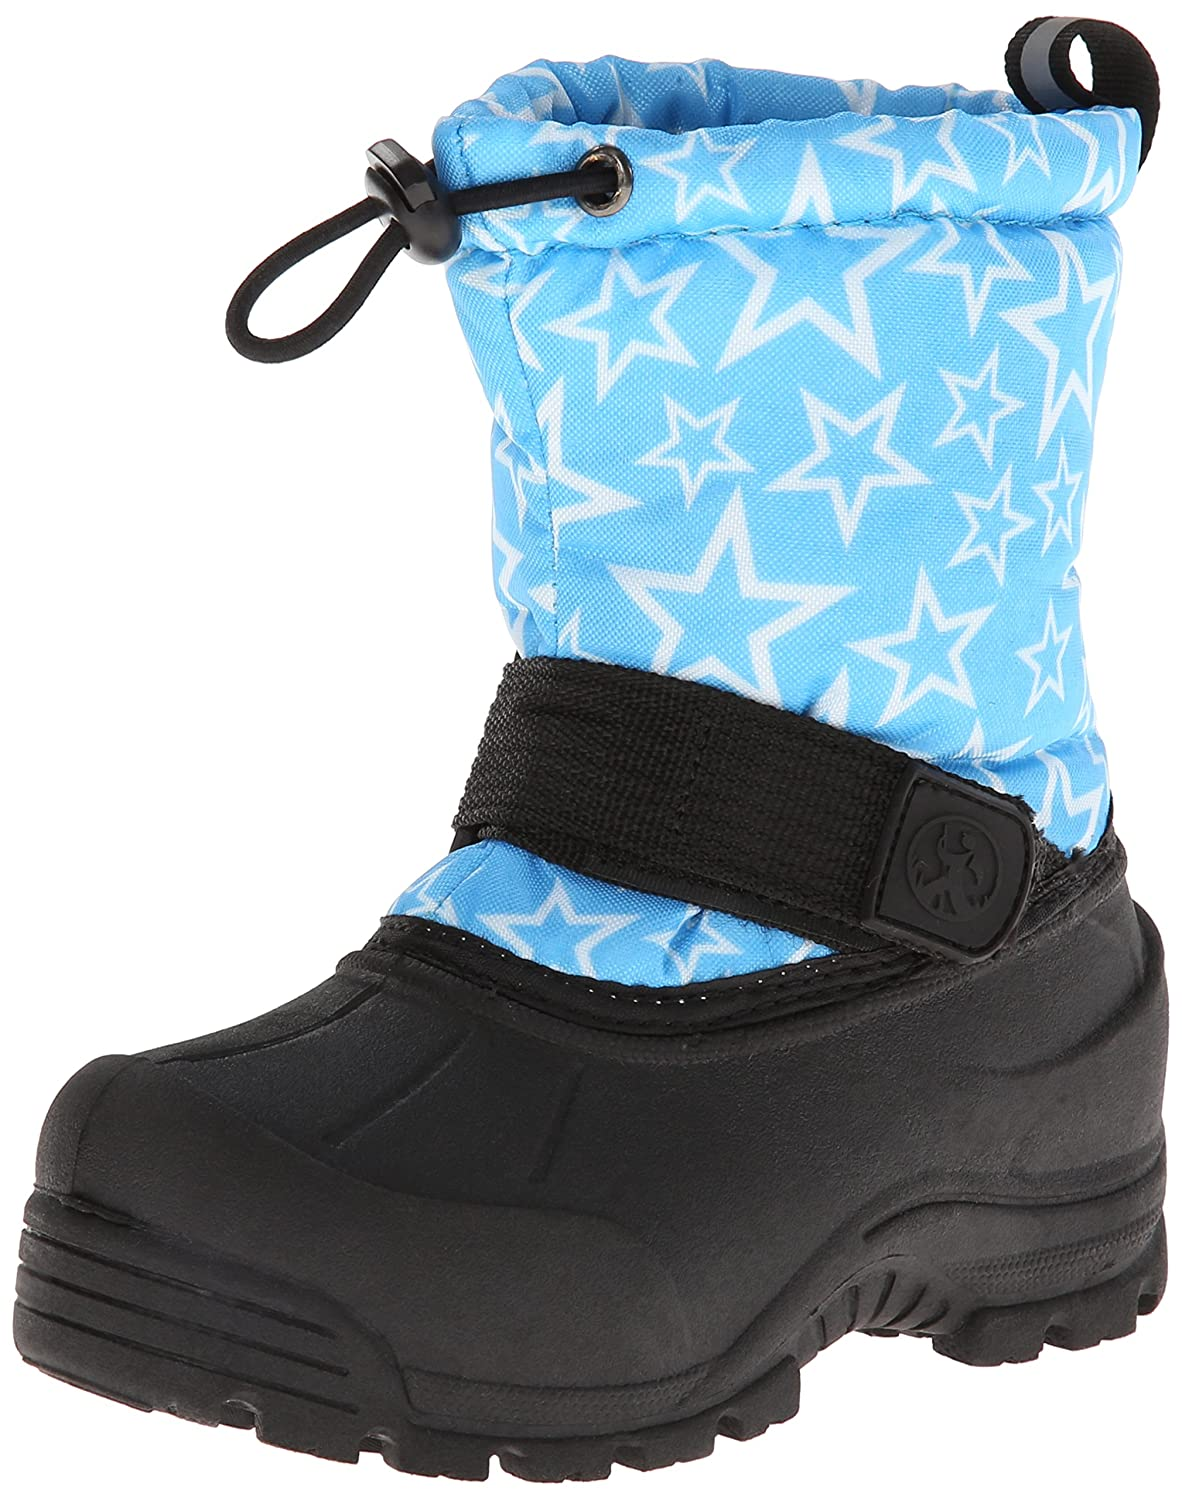 Northside Boys Girls Toddler/Little Kids/Big Kids Frosty Winter Snow Boot Frosty Toddler - K